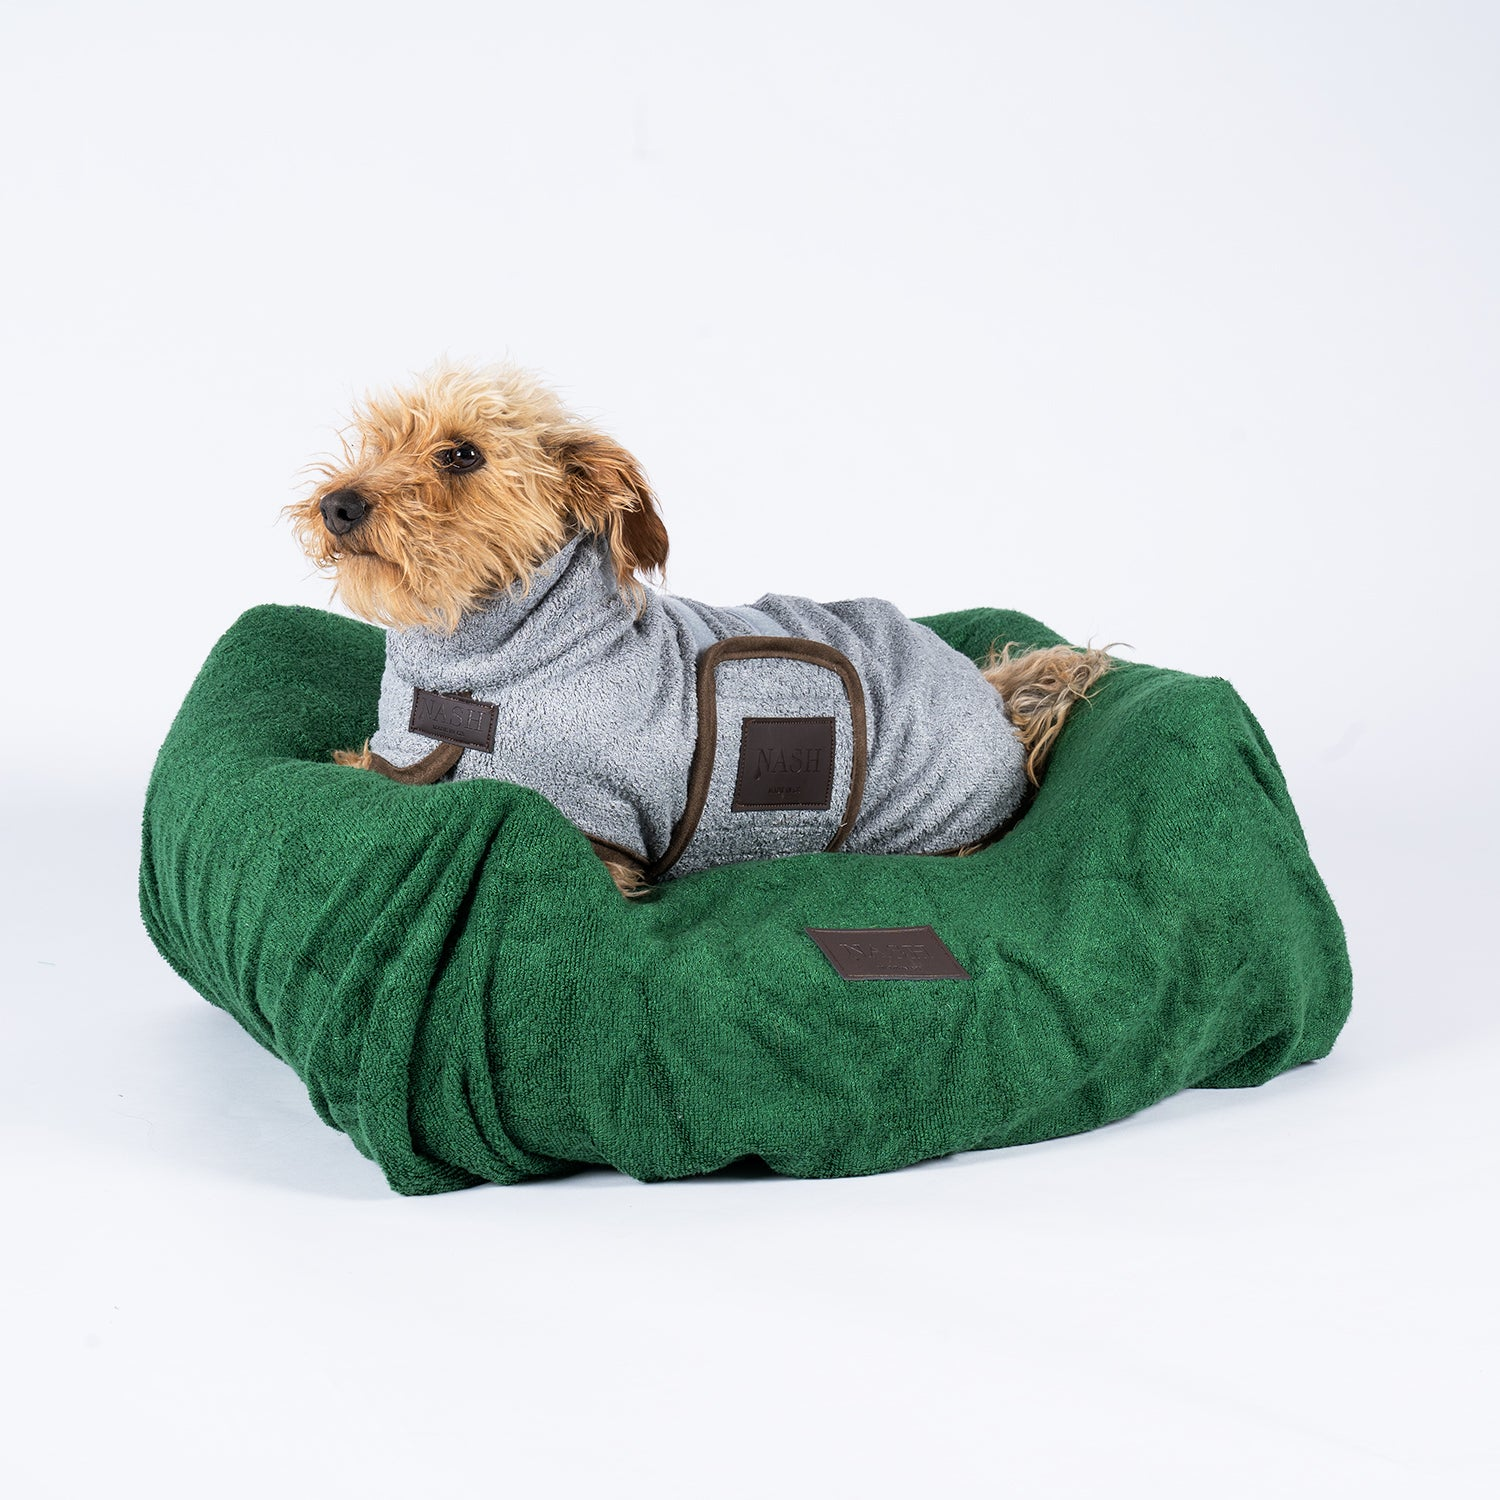 Bamboo Dog Bed Cover - Forest - Shop Bamboo Dog Drying Coats, bed covers, drying mitts & throw Online!